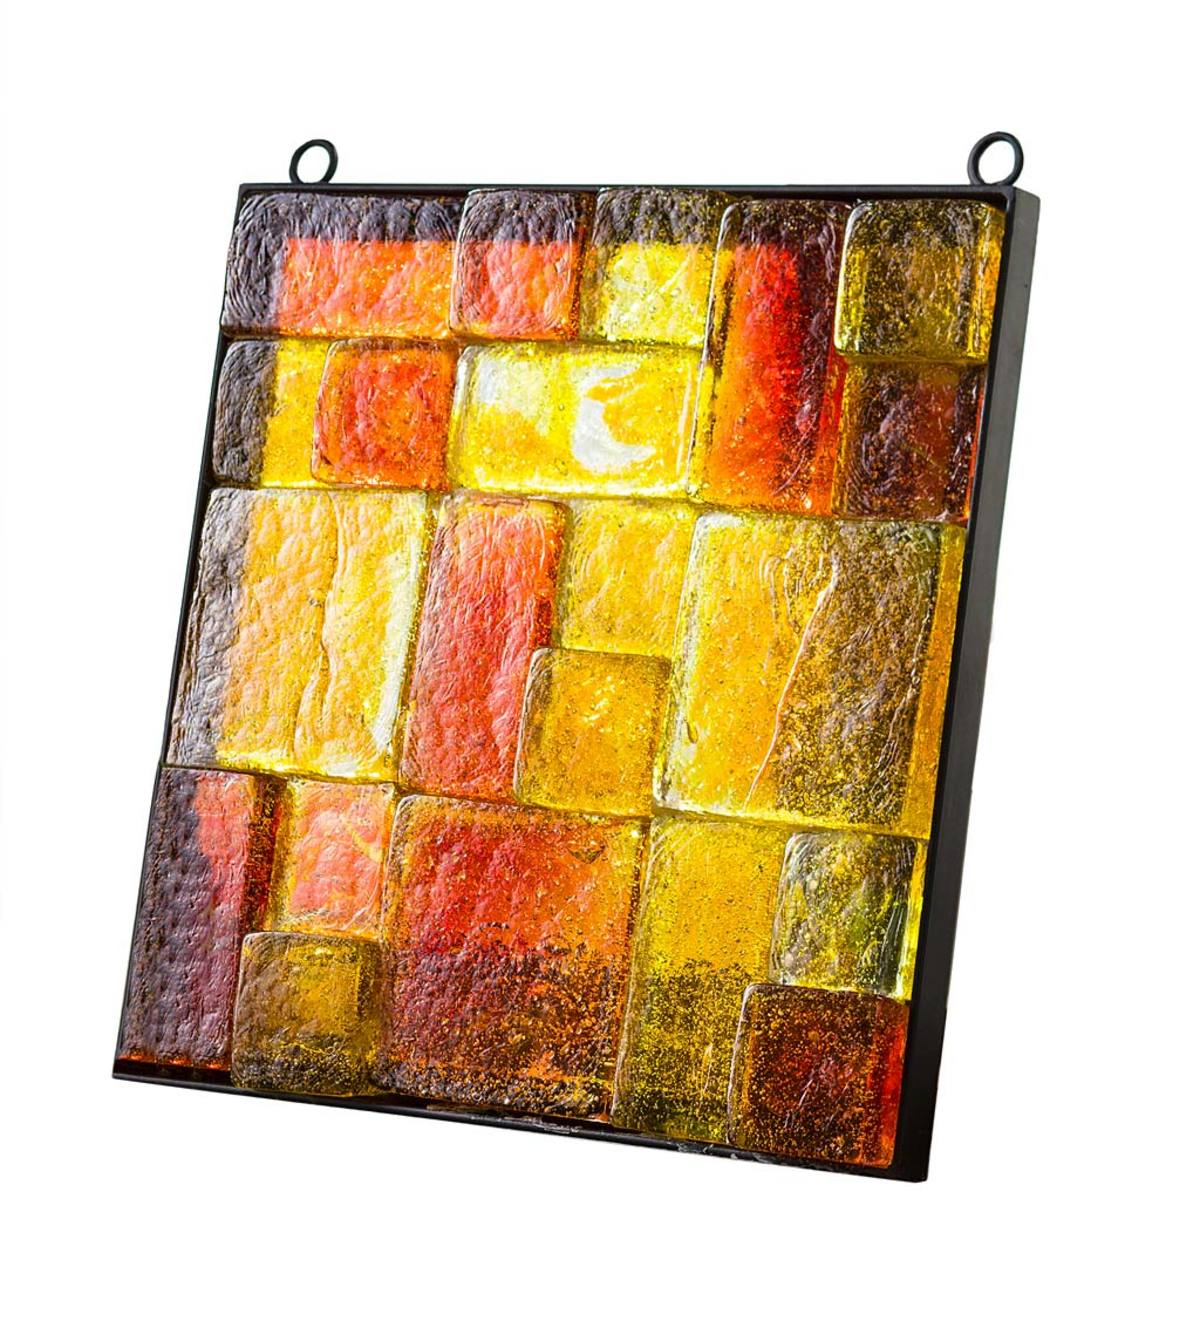 Metal-Framed Colorful Glass Block Wall Art - Red